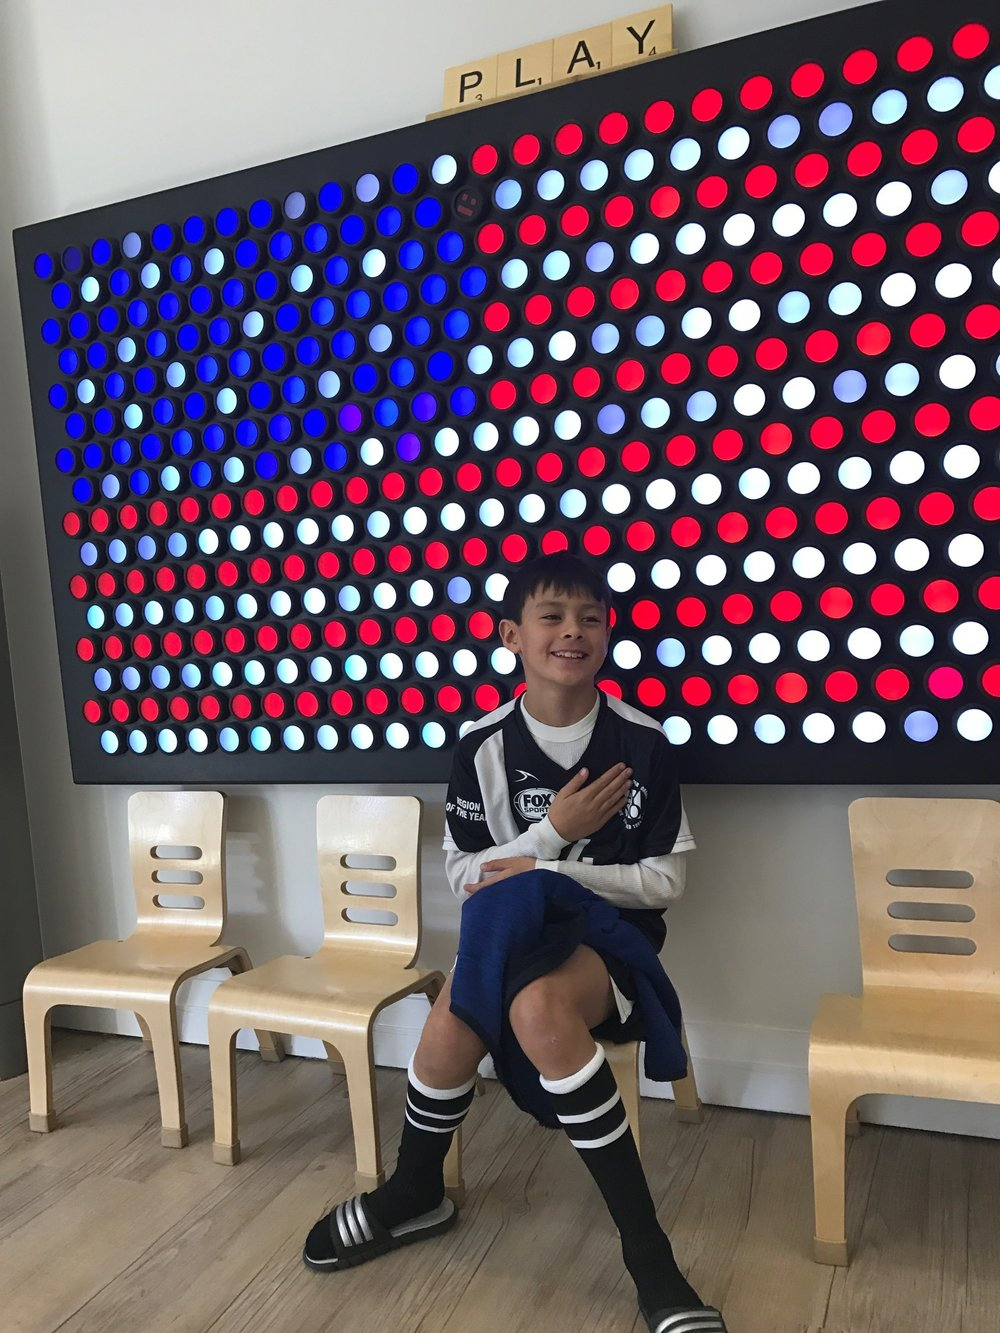 american flag creation by this guy on our Play-LED wall